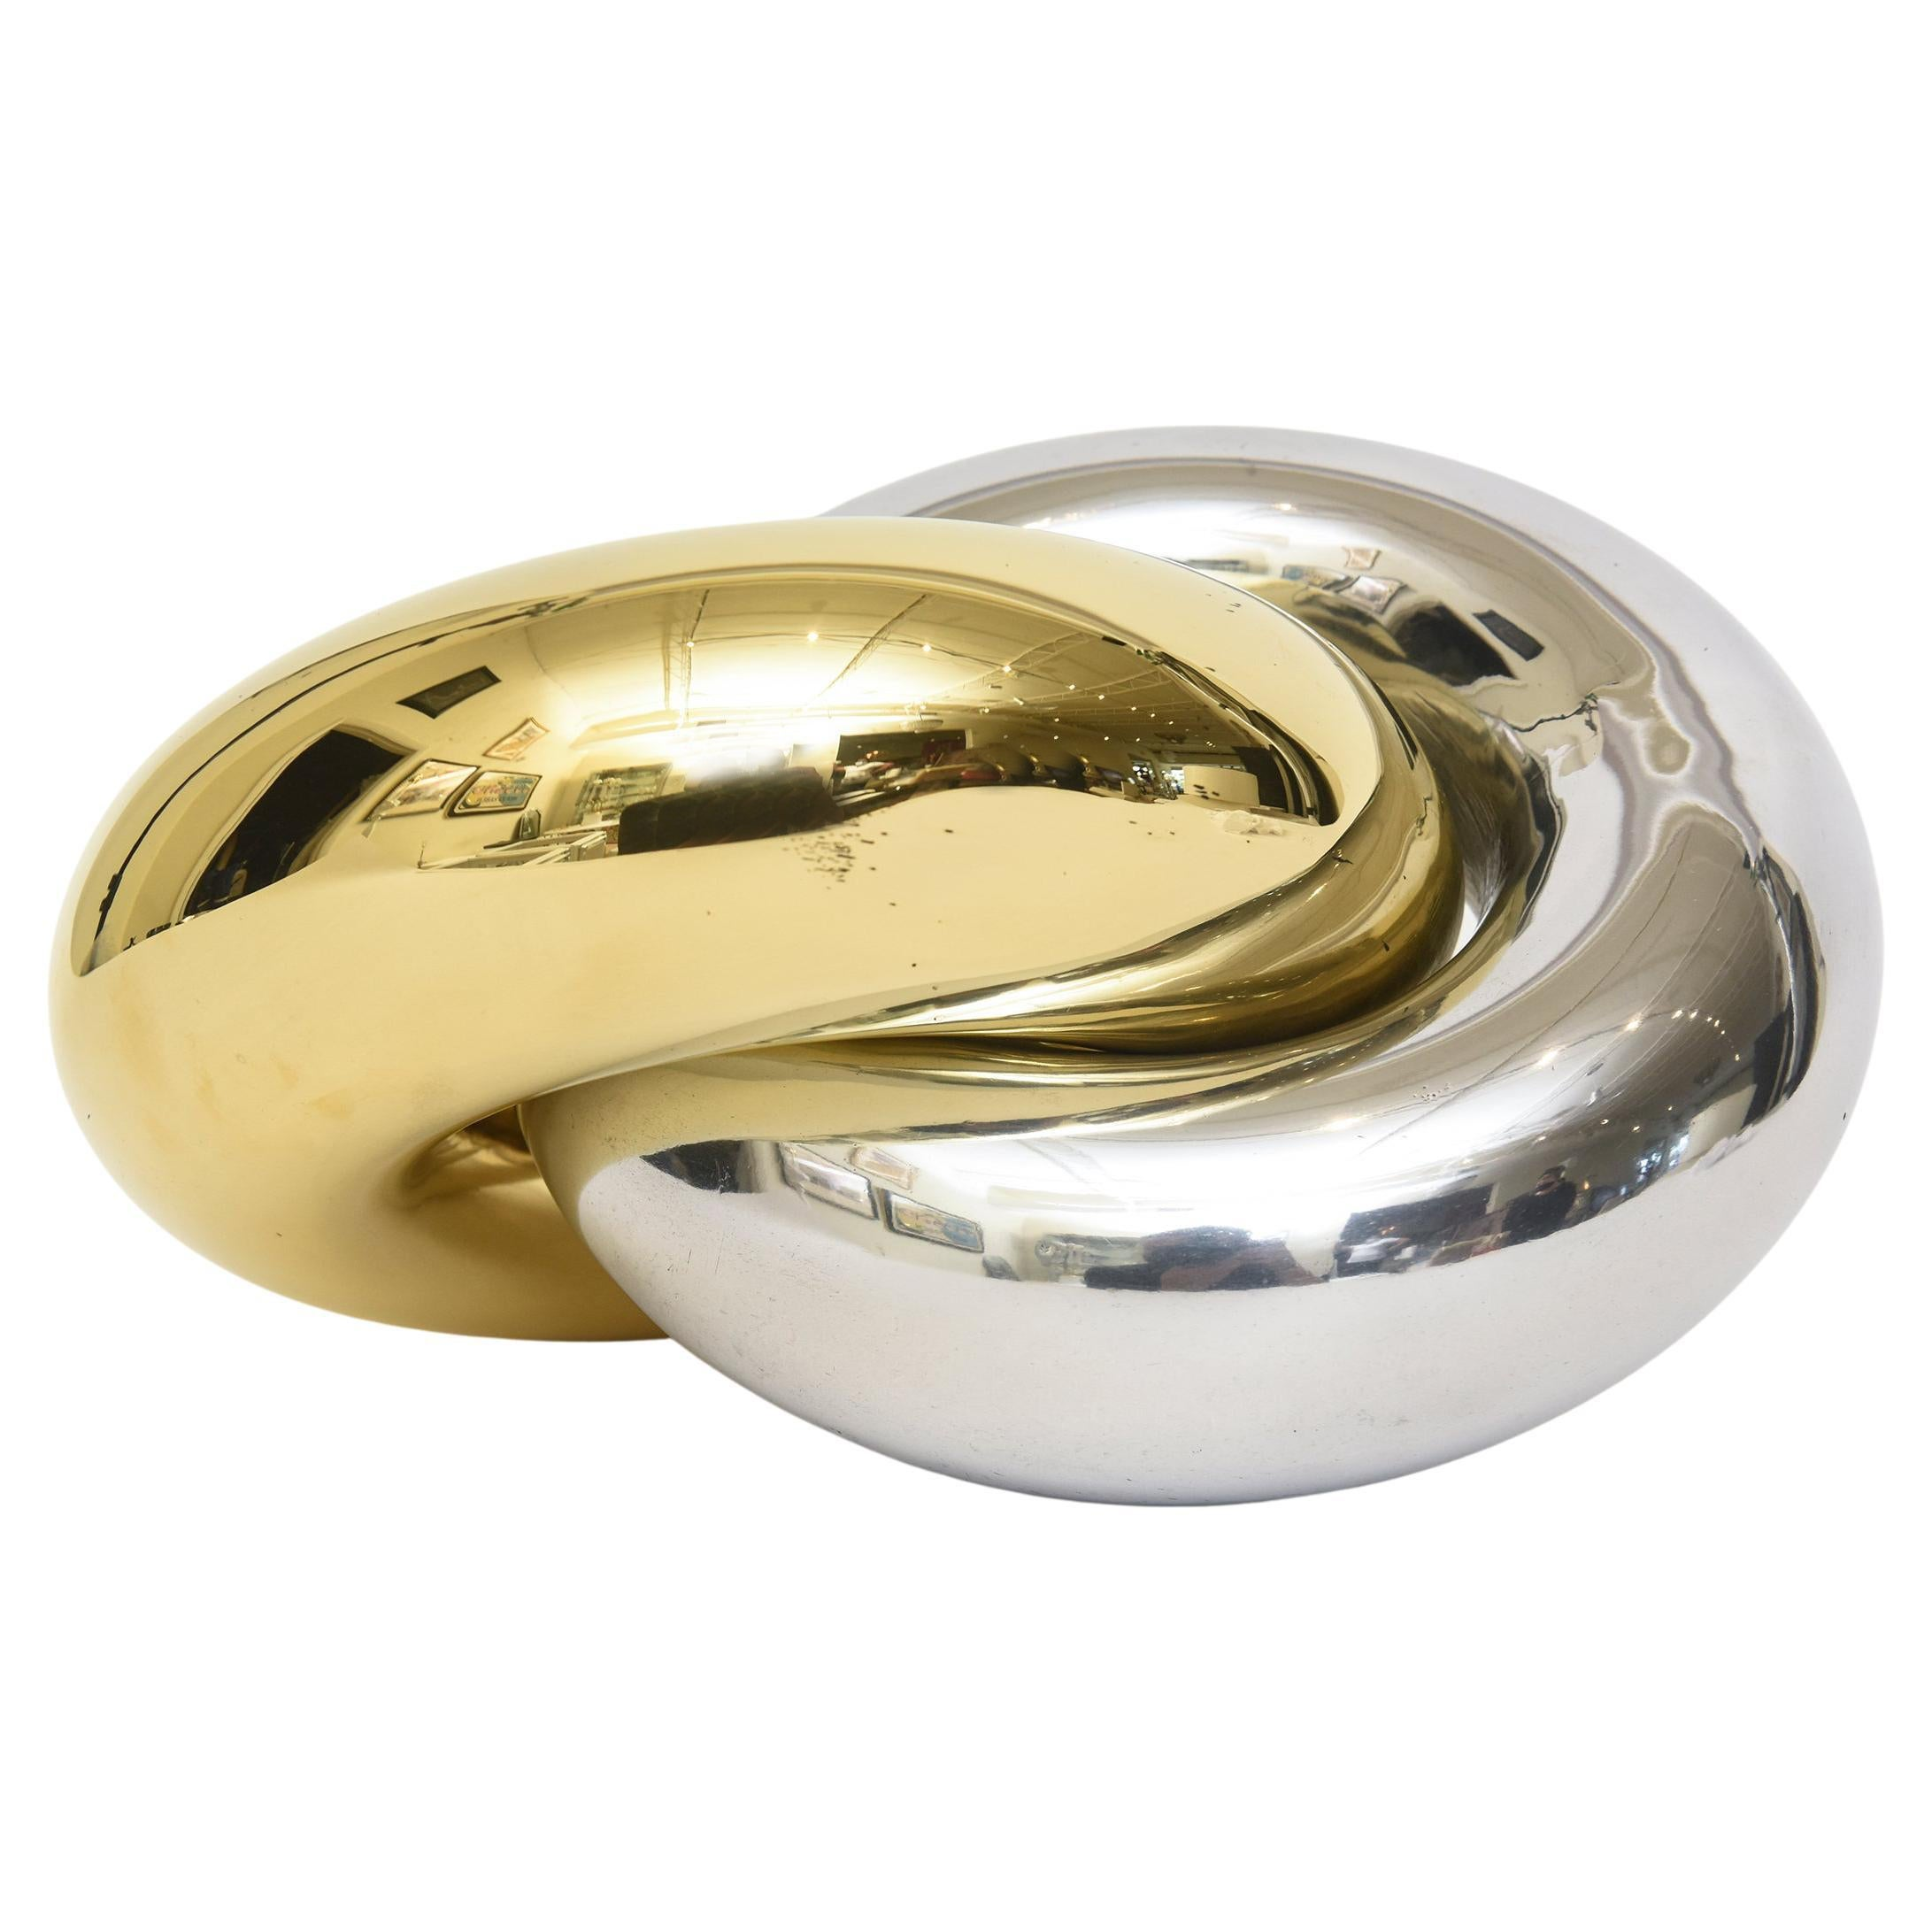 Intertwined Twisted Brass and Chrome Plated Ring Sculpture Vintage